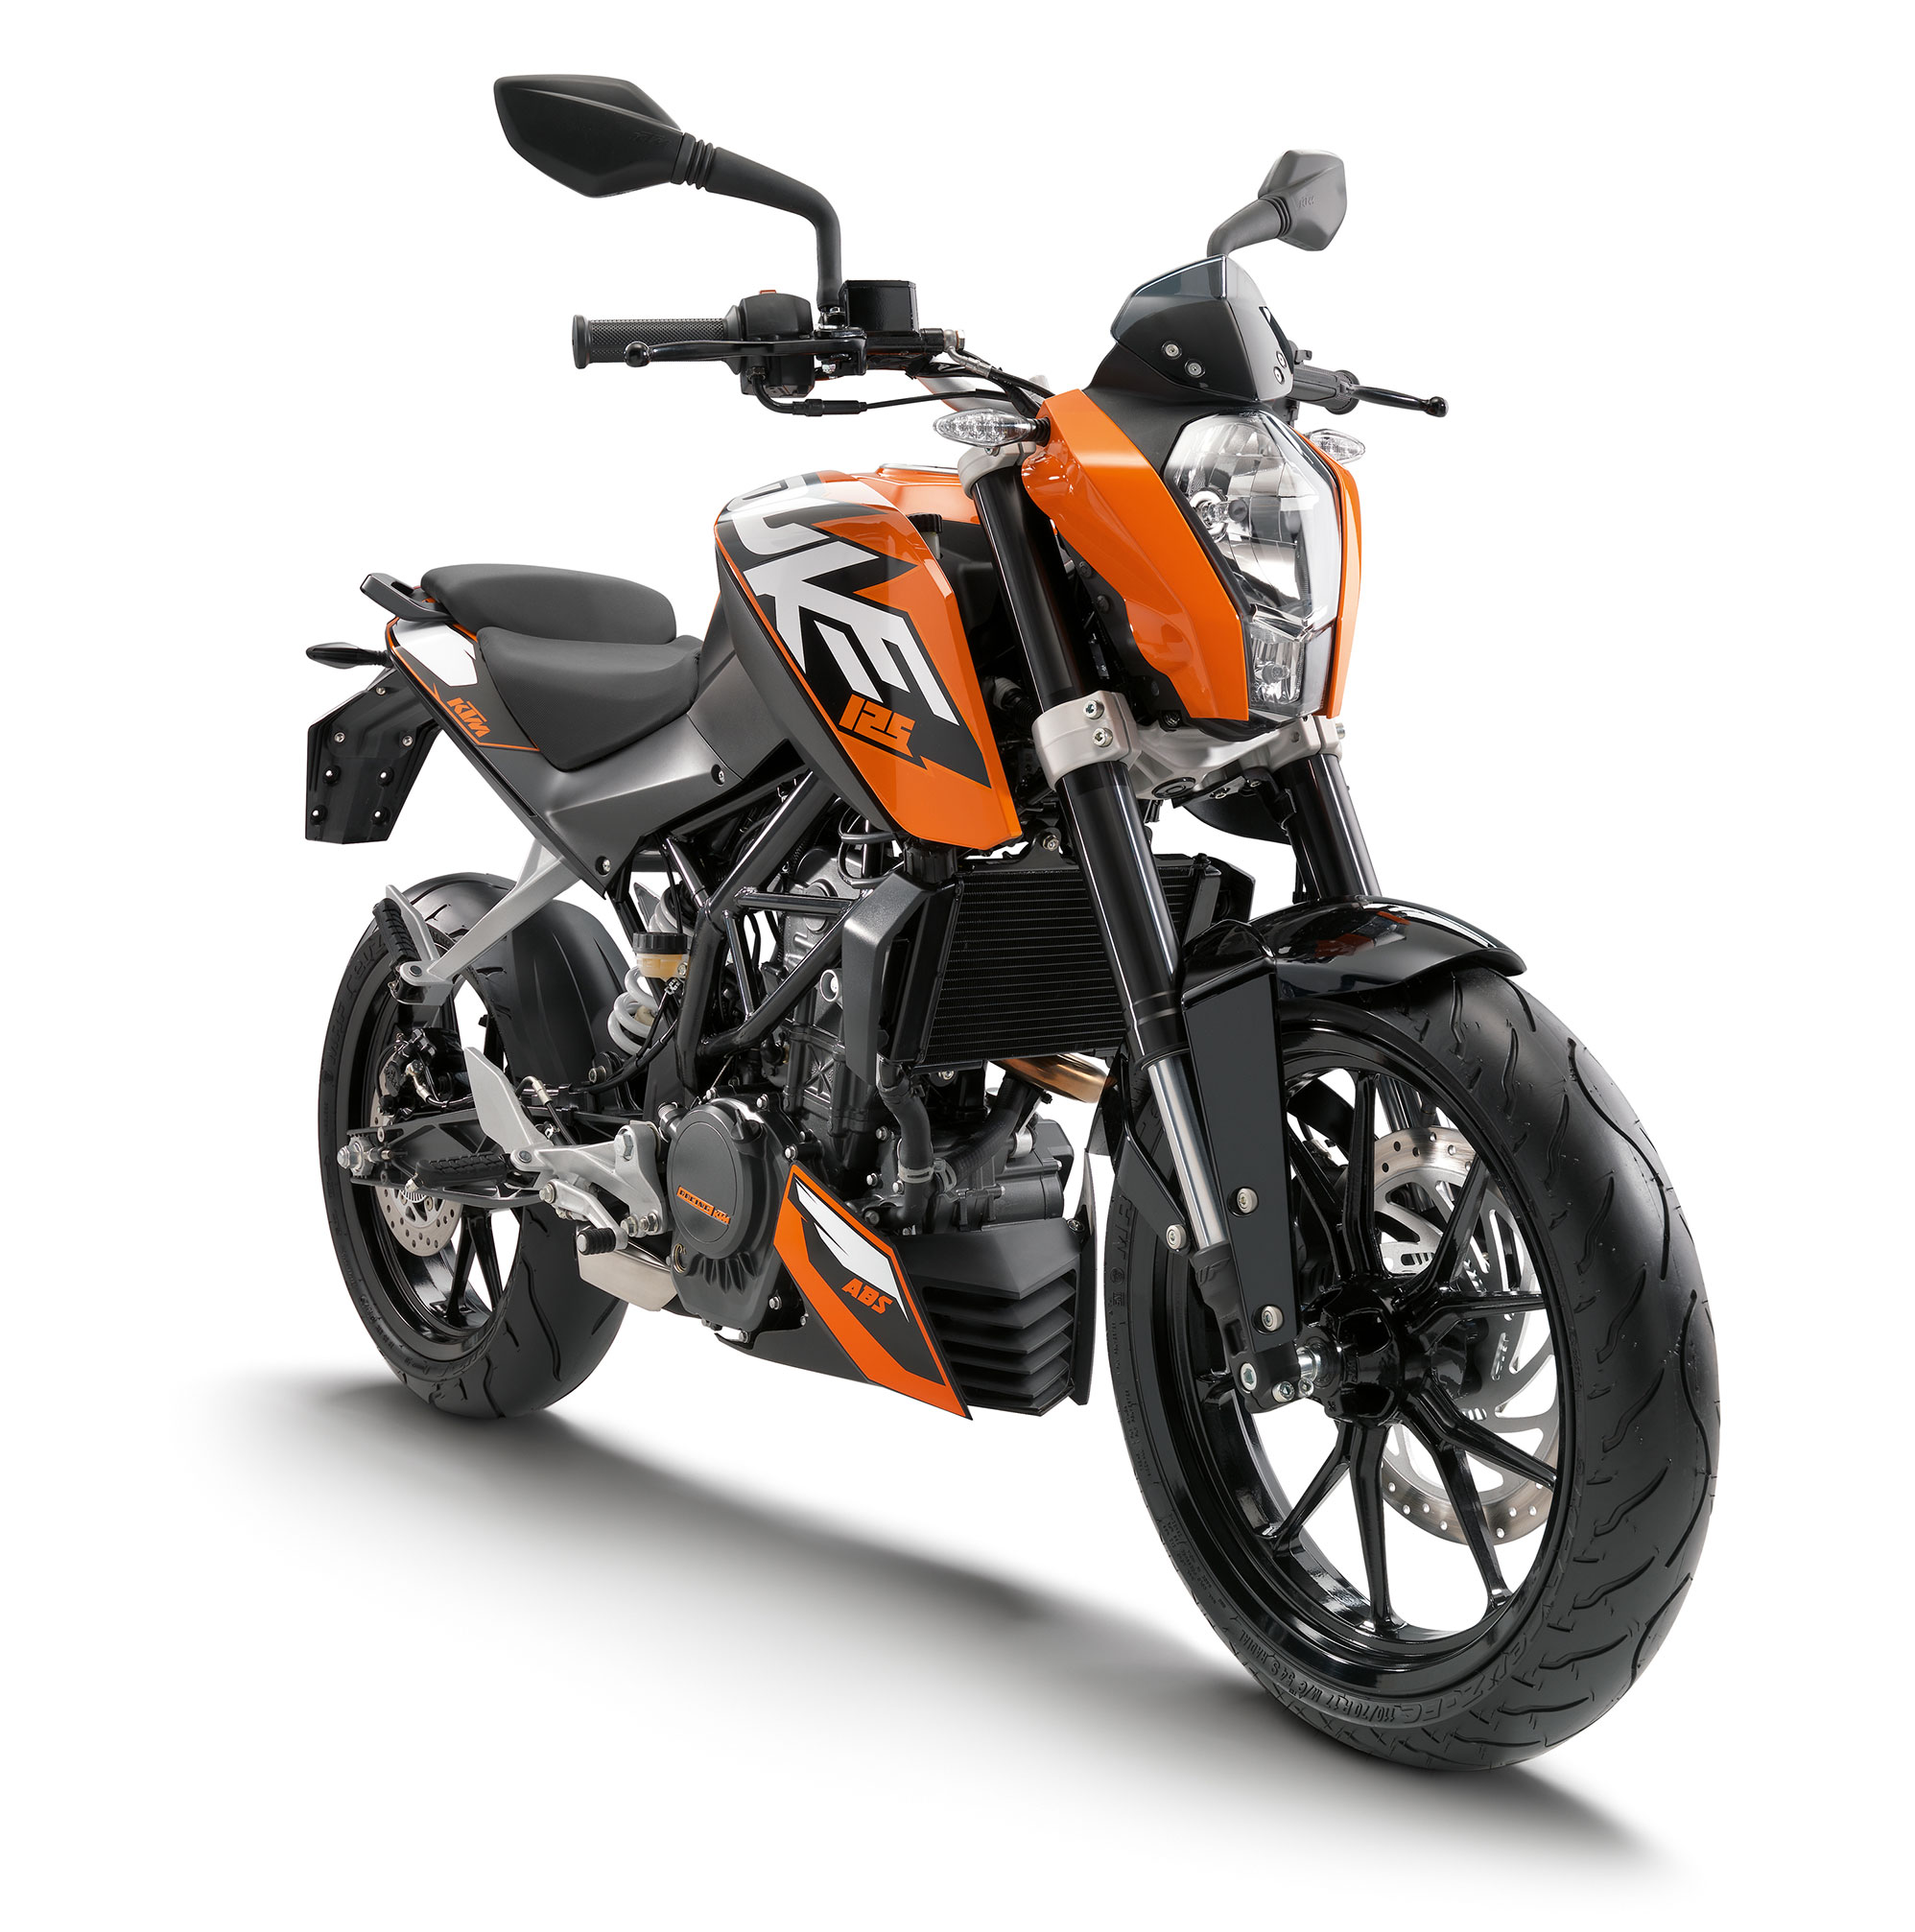 2014 ktm 125 duke abs review. Black Bedroom Furniture Sets. Home Design Ideas